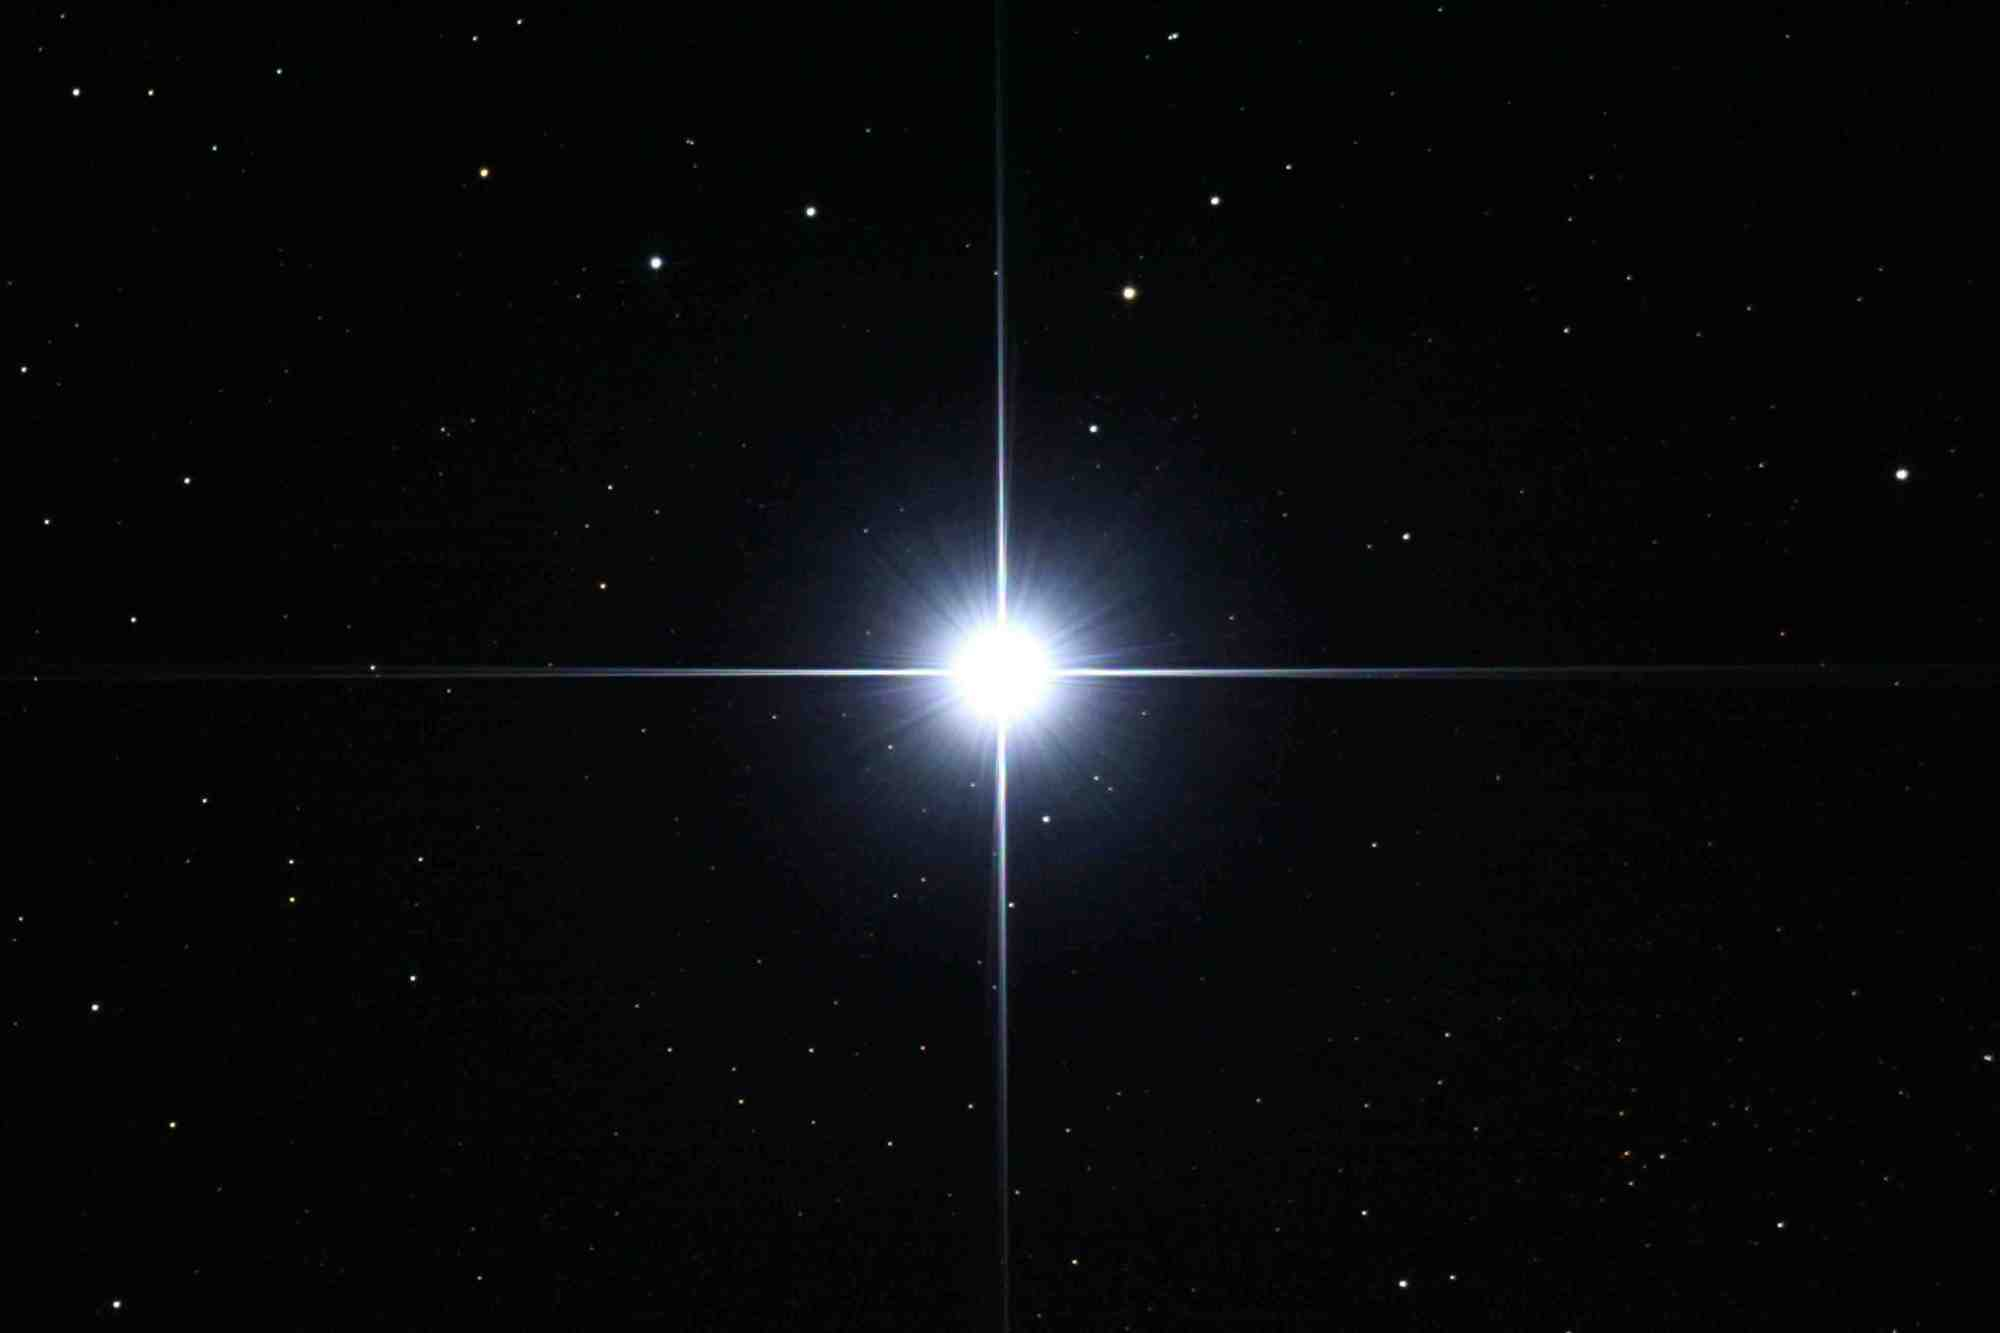 Sirius-1 is the main star in the star group Canis Majoris and the brightest in the night sky